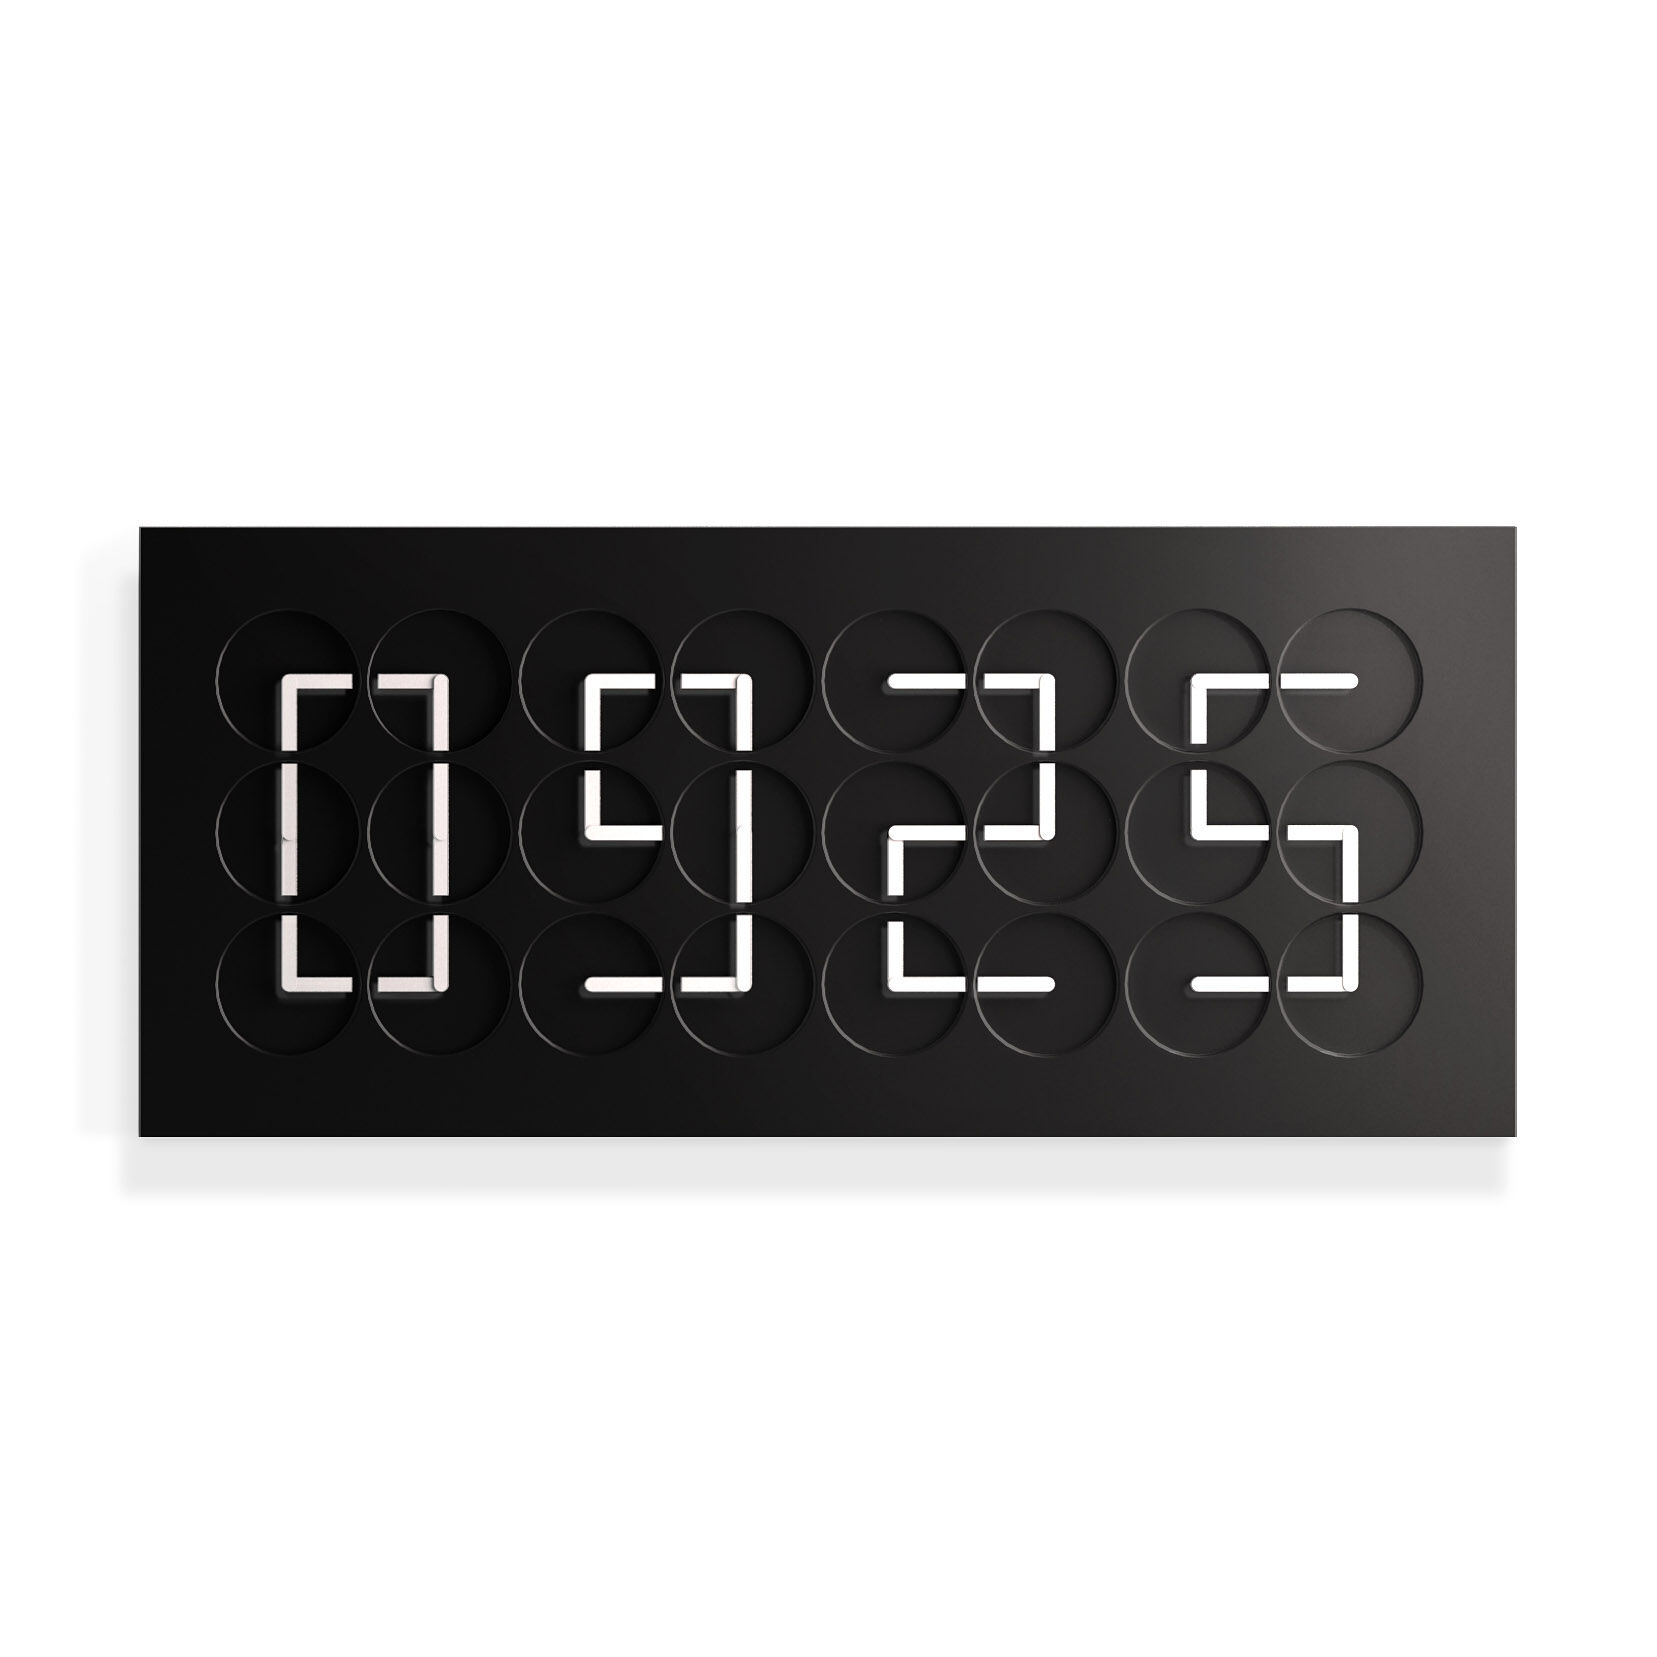 Buy Clock Clockclock 24 Black Edition